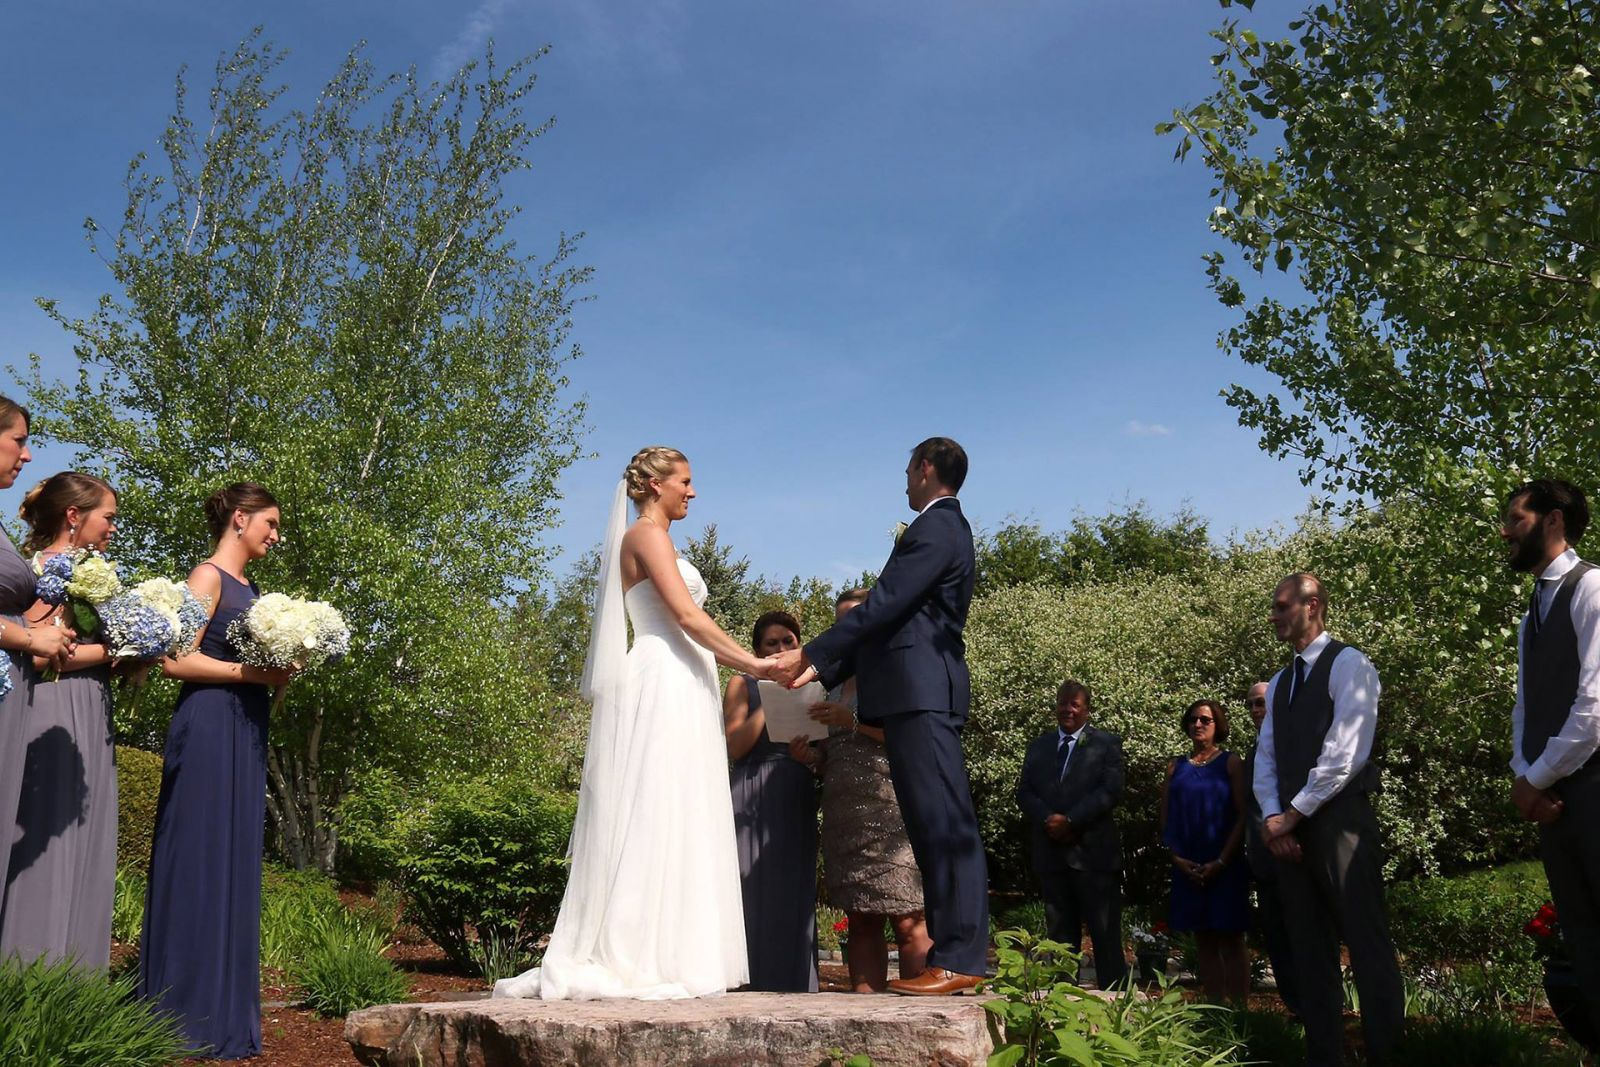 A couple embraces at the Garden Ceremony site at Catamount Country Club